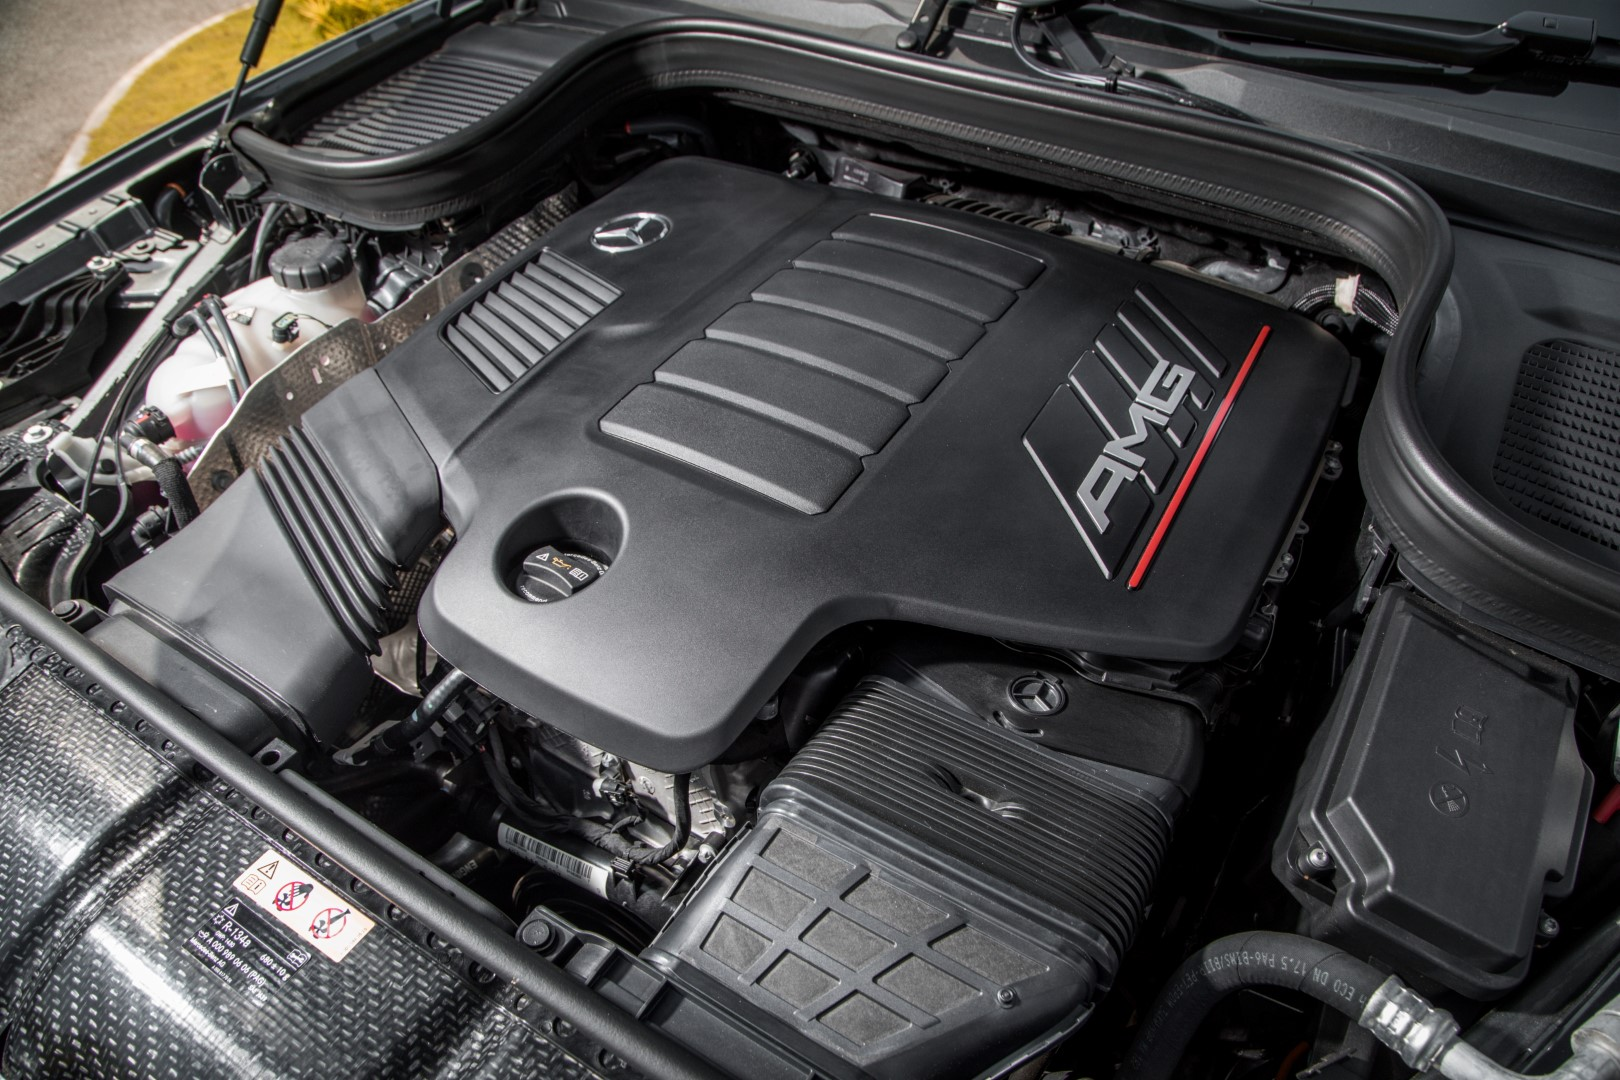 mercedes-amg gle 53 coupe engine